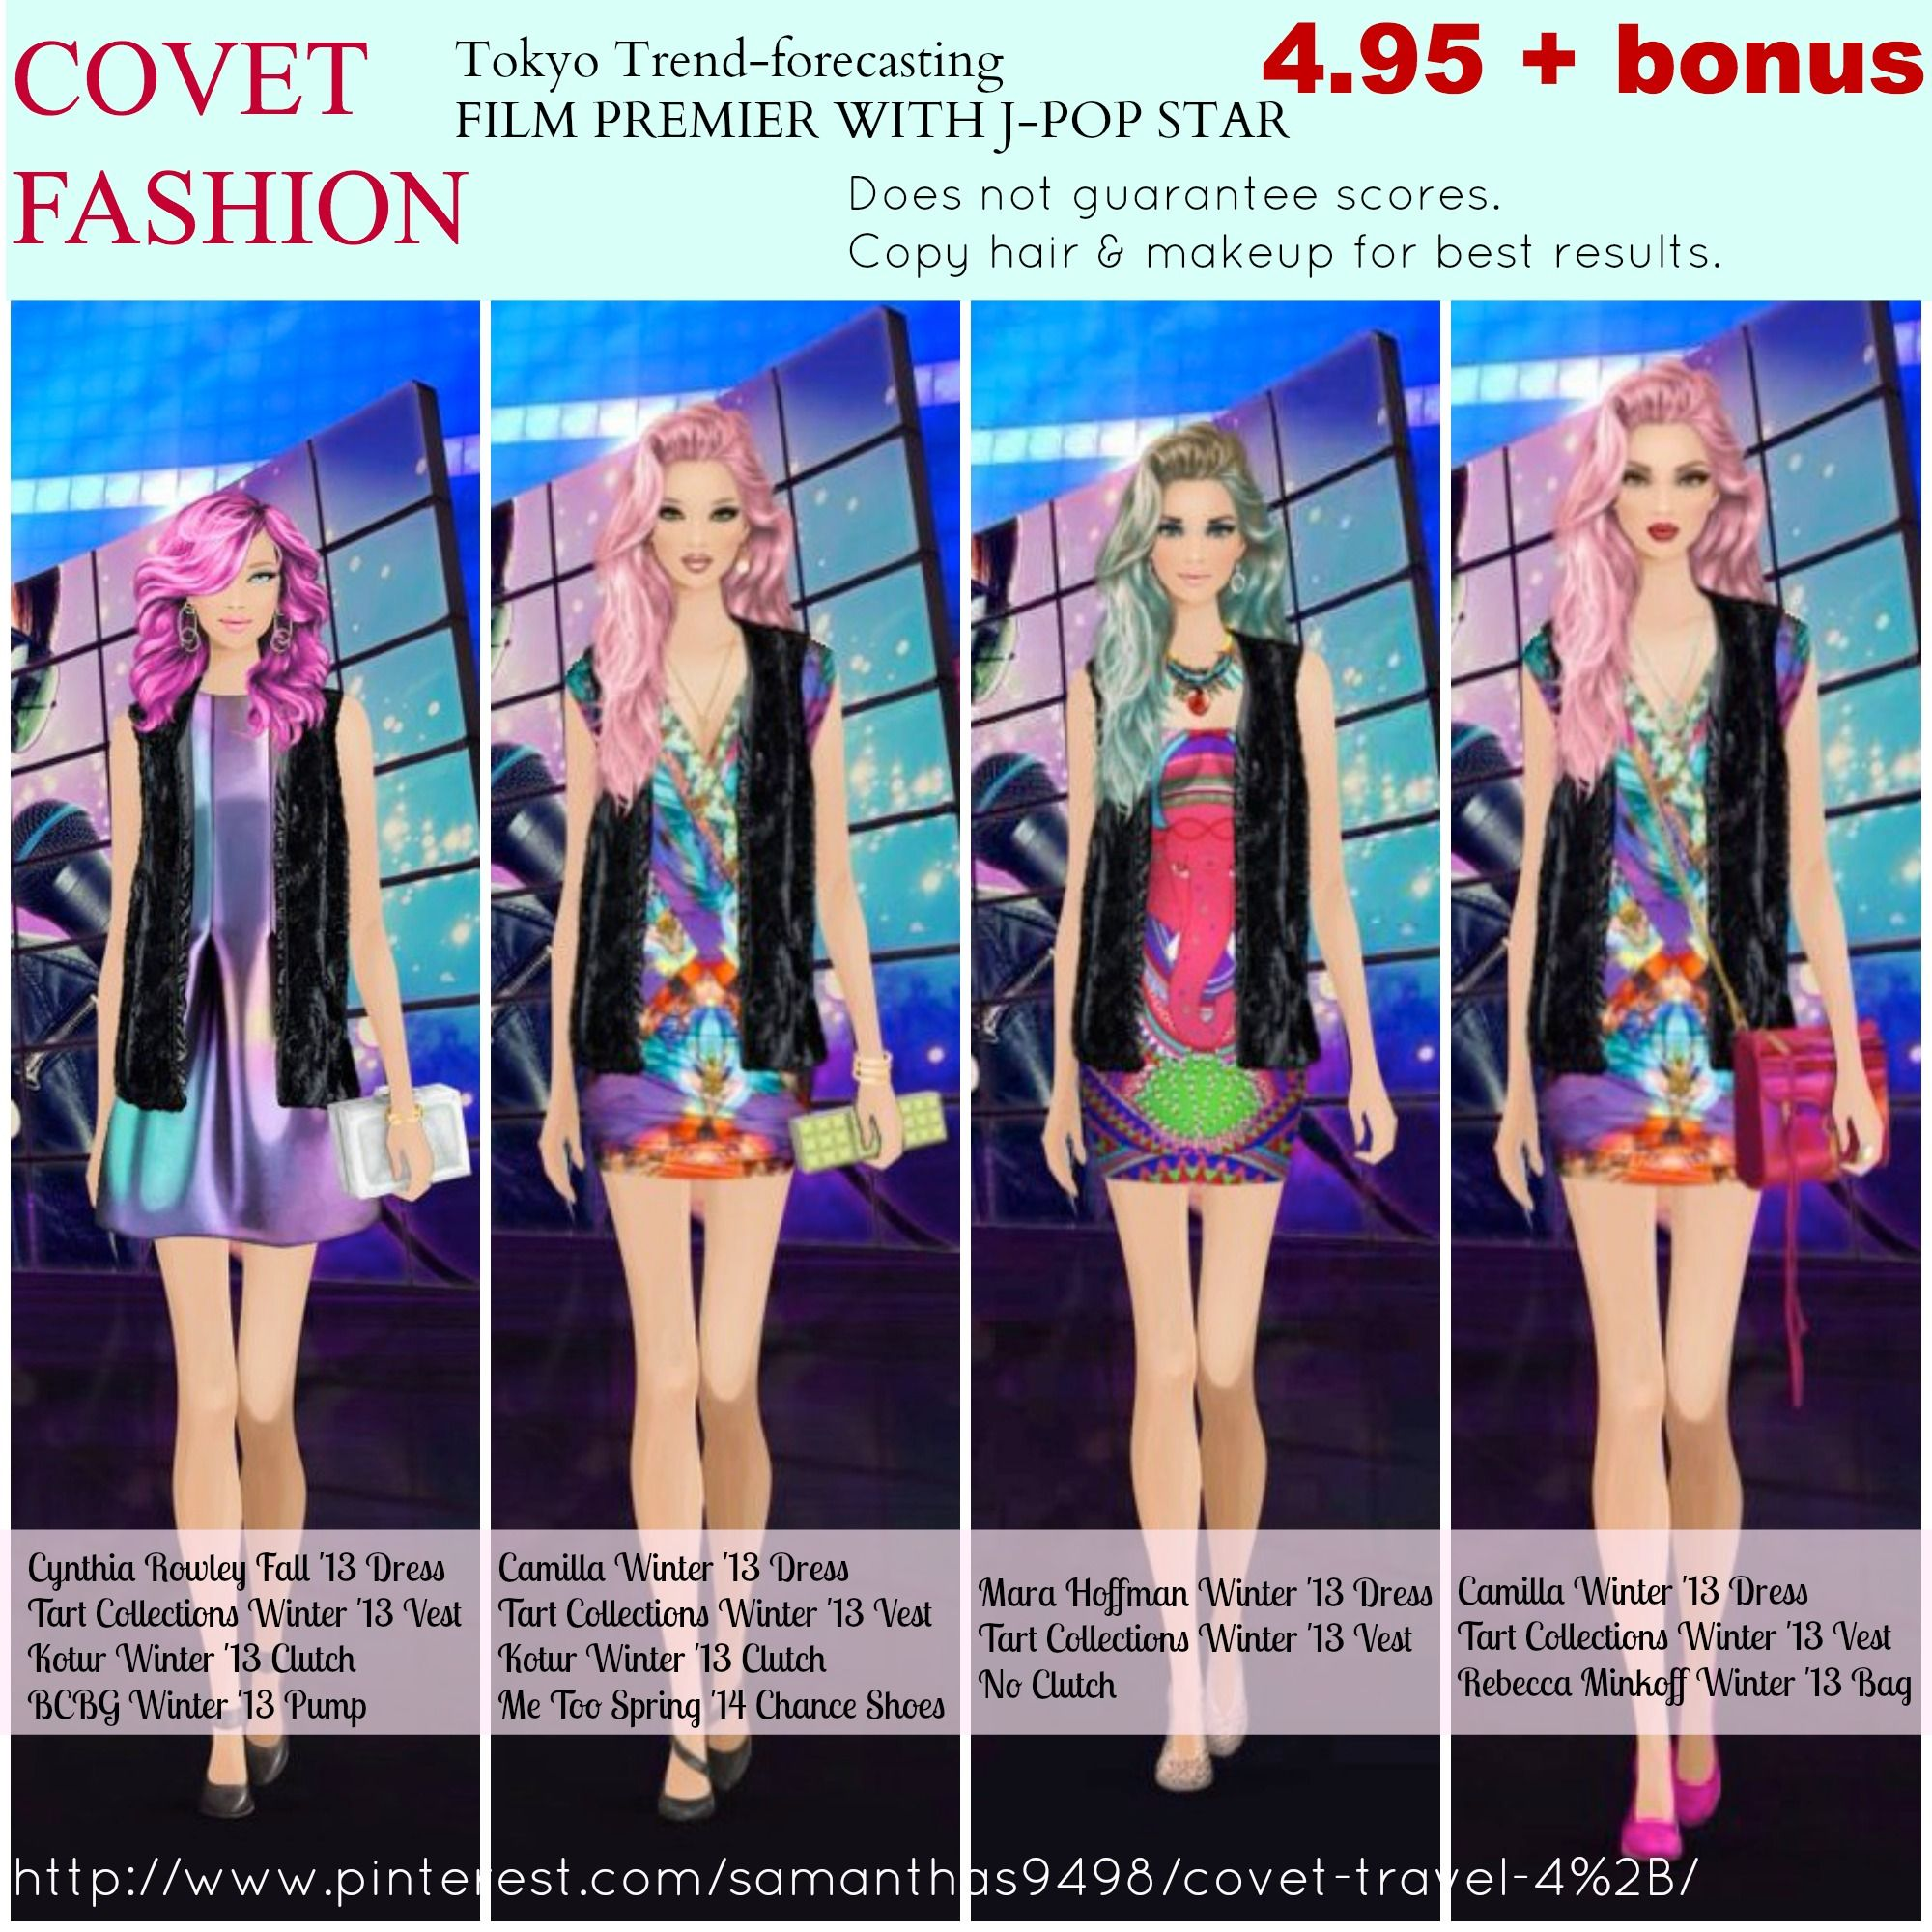 Covet Fashion Jet Set Tokyo Trend Forecasting Film Premier With J Pop Star All Outfits